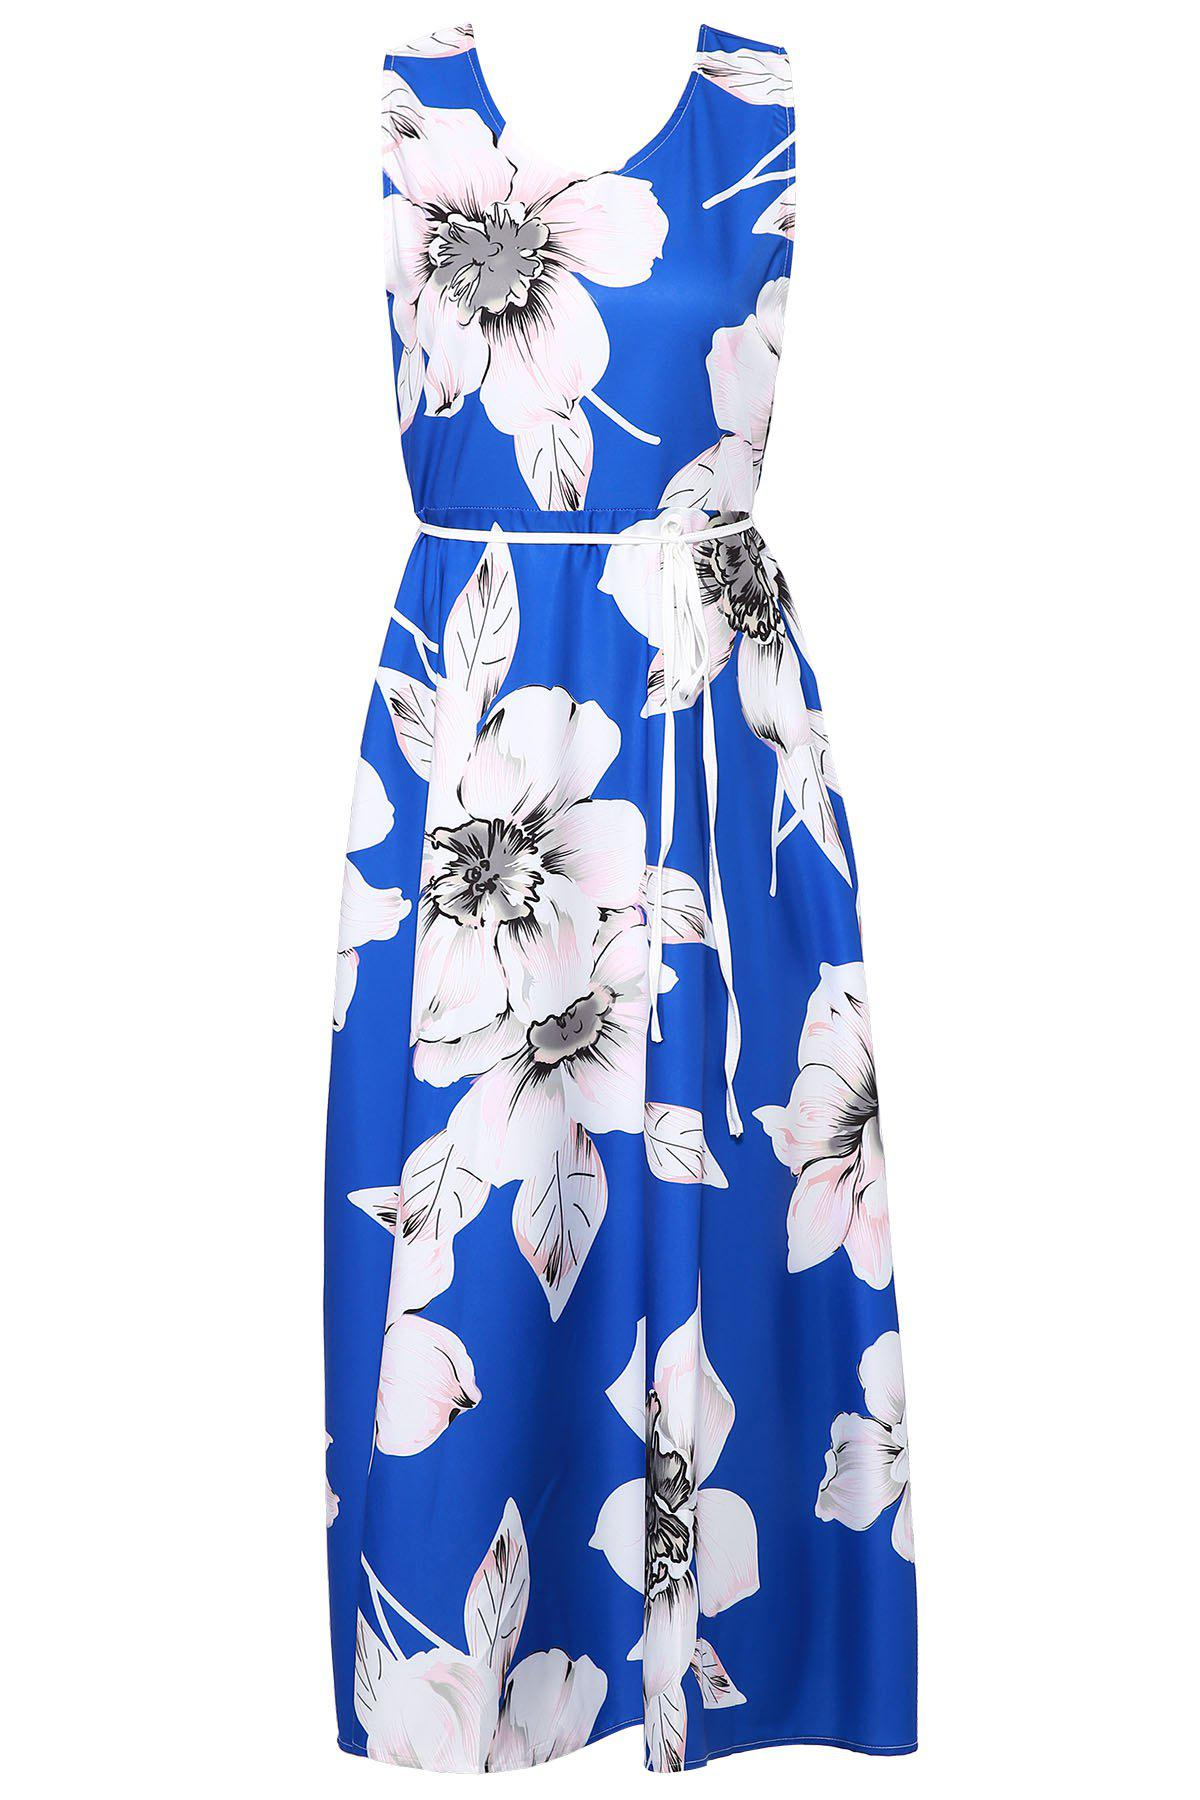 Elegant Women's V-Neck Sleeveless Floral Print Maxi Dress - BLUE L